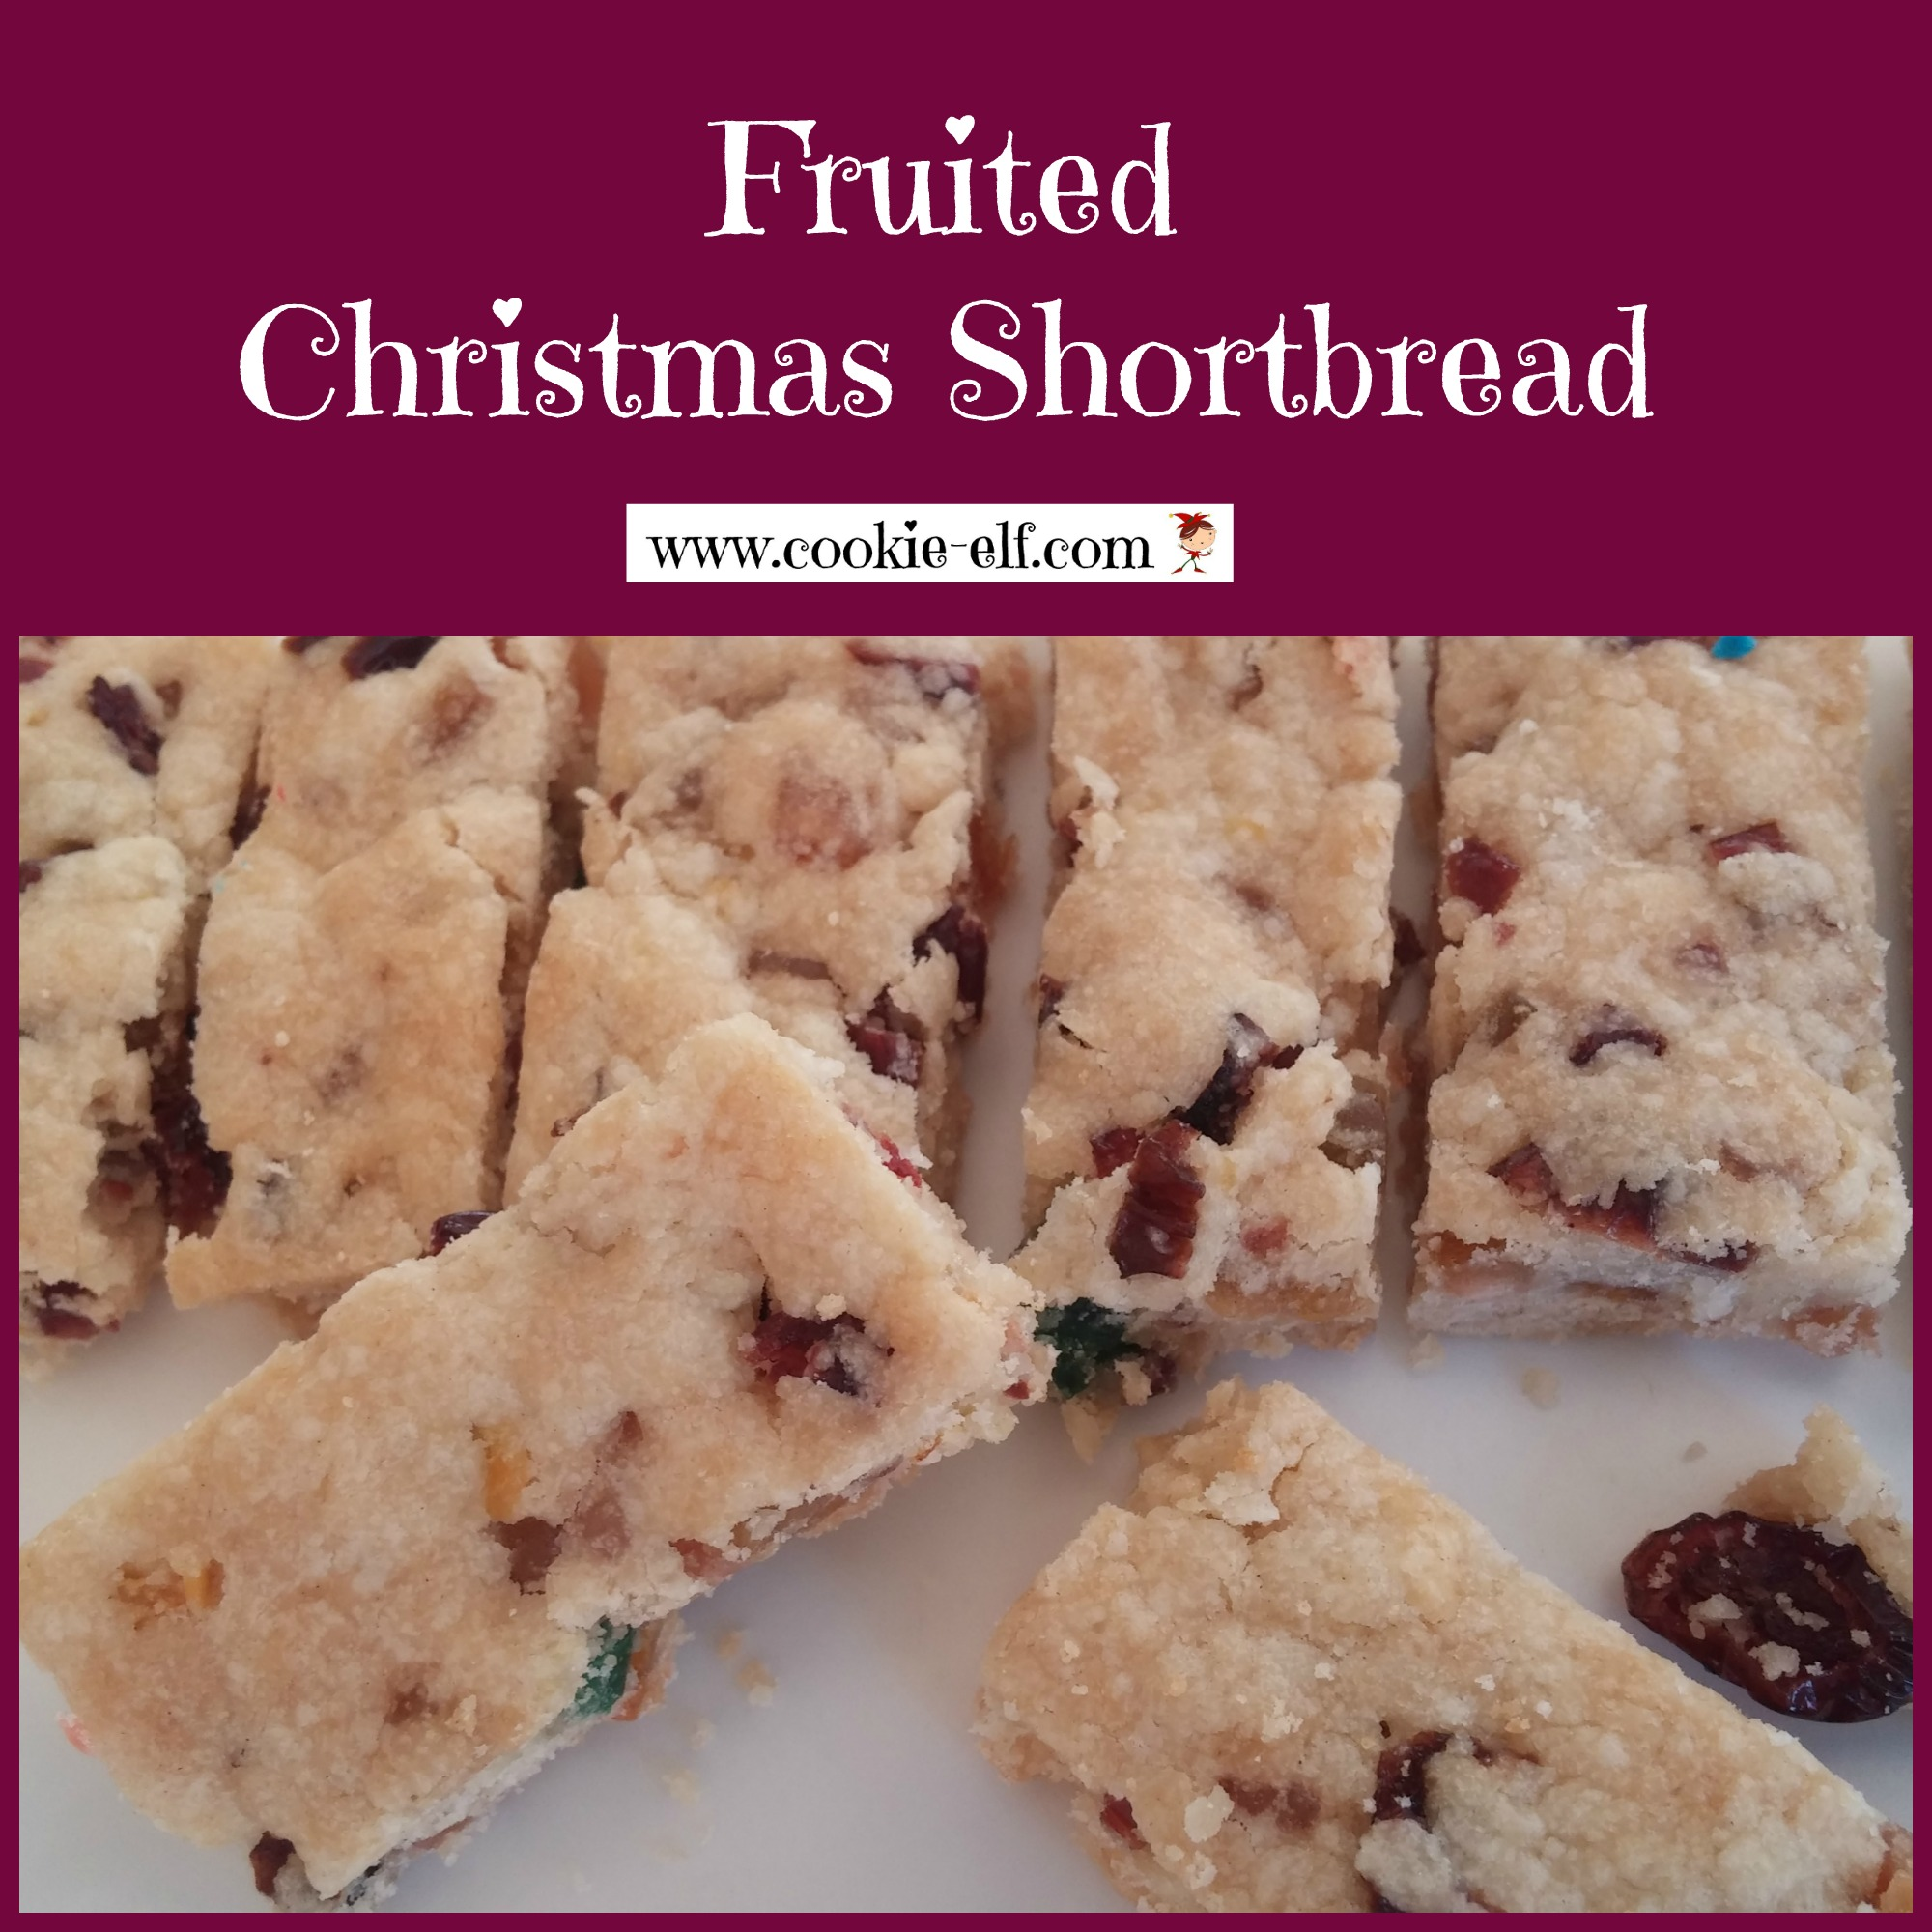 Fruited Christmas Shortbread from The Cookie Elf